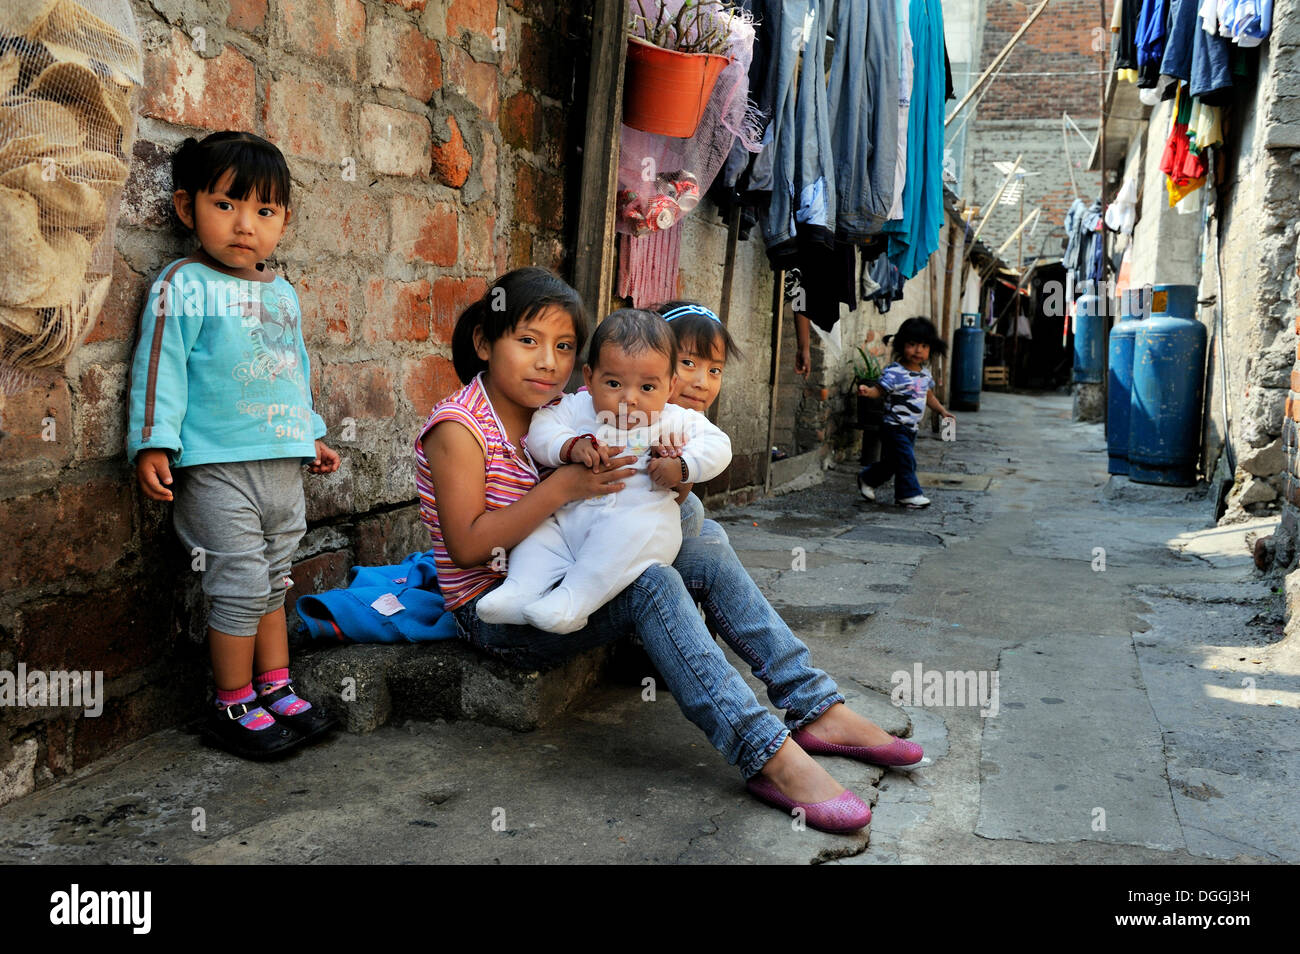 child labor in mexico Child labor and severe functioning difficulties and disability in mexican children  and adolescents 5-17 years of age villalobos a(1), de castro f(1), rojas r(1),.